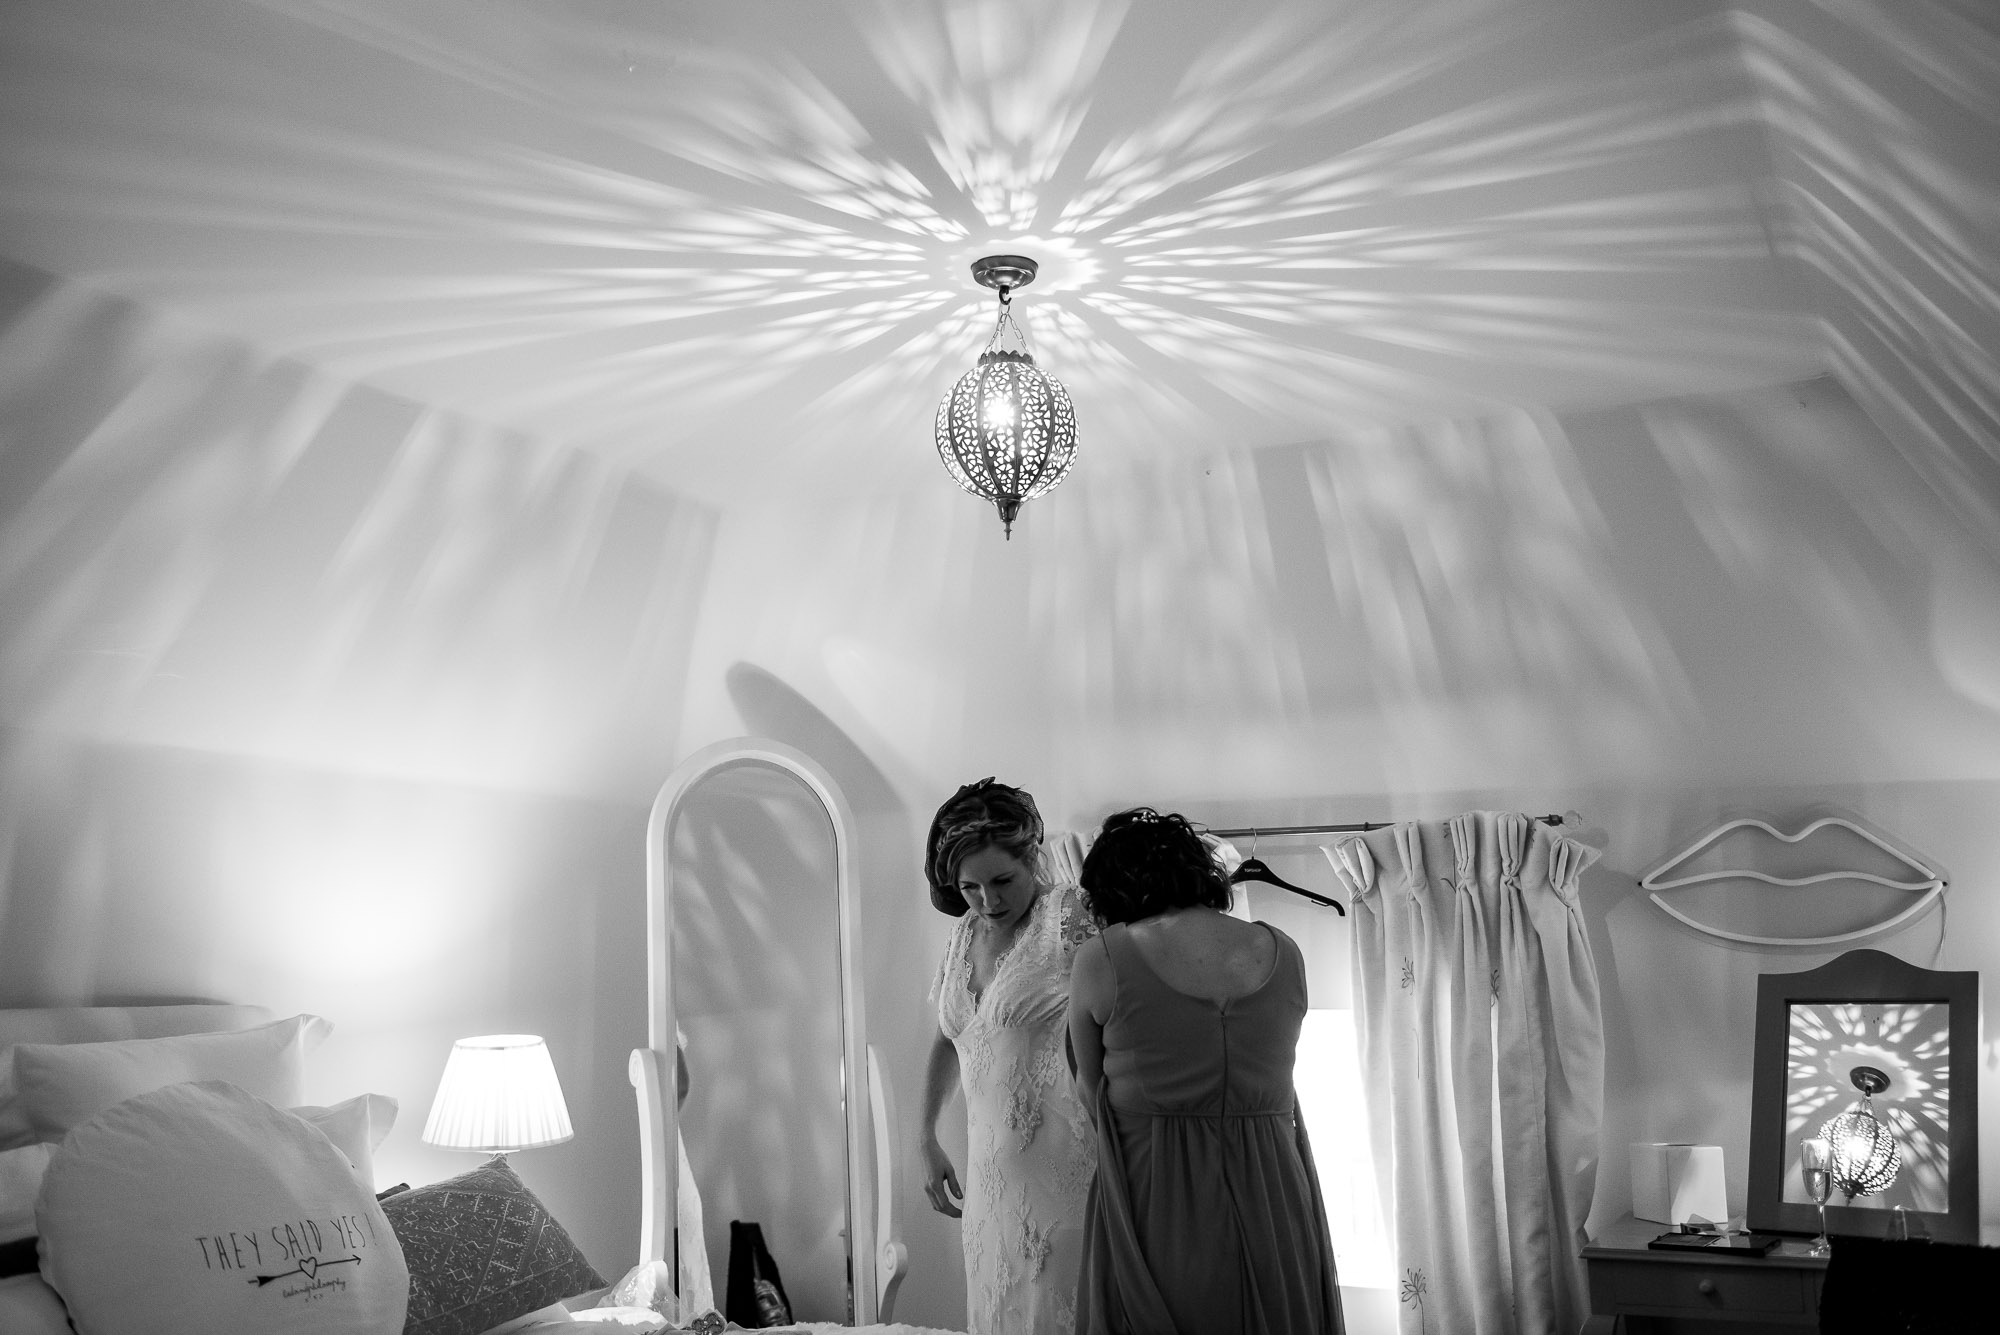 Bride getting changed into her wedding dress